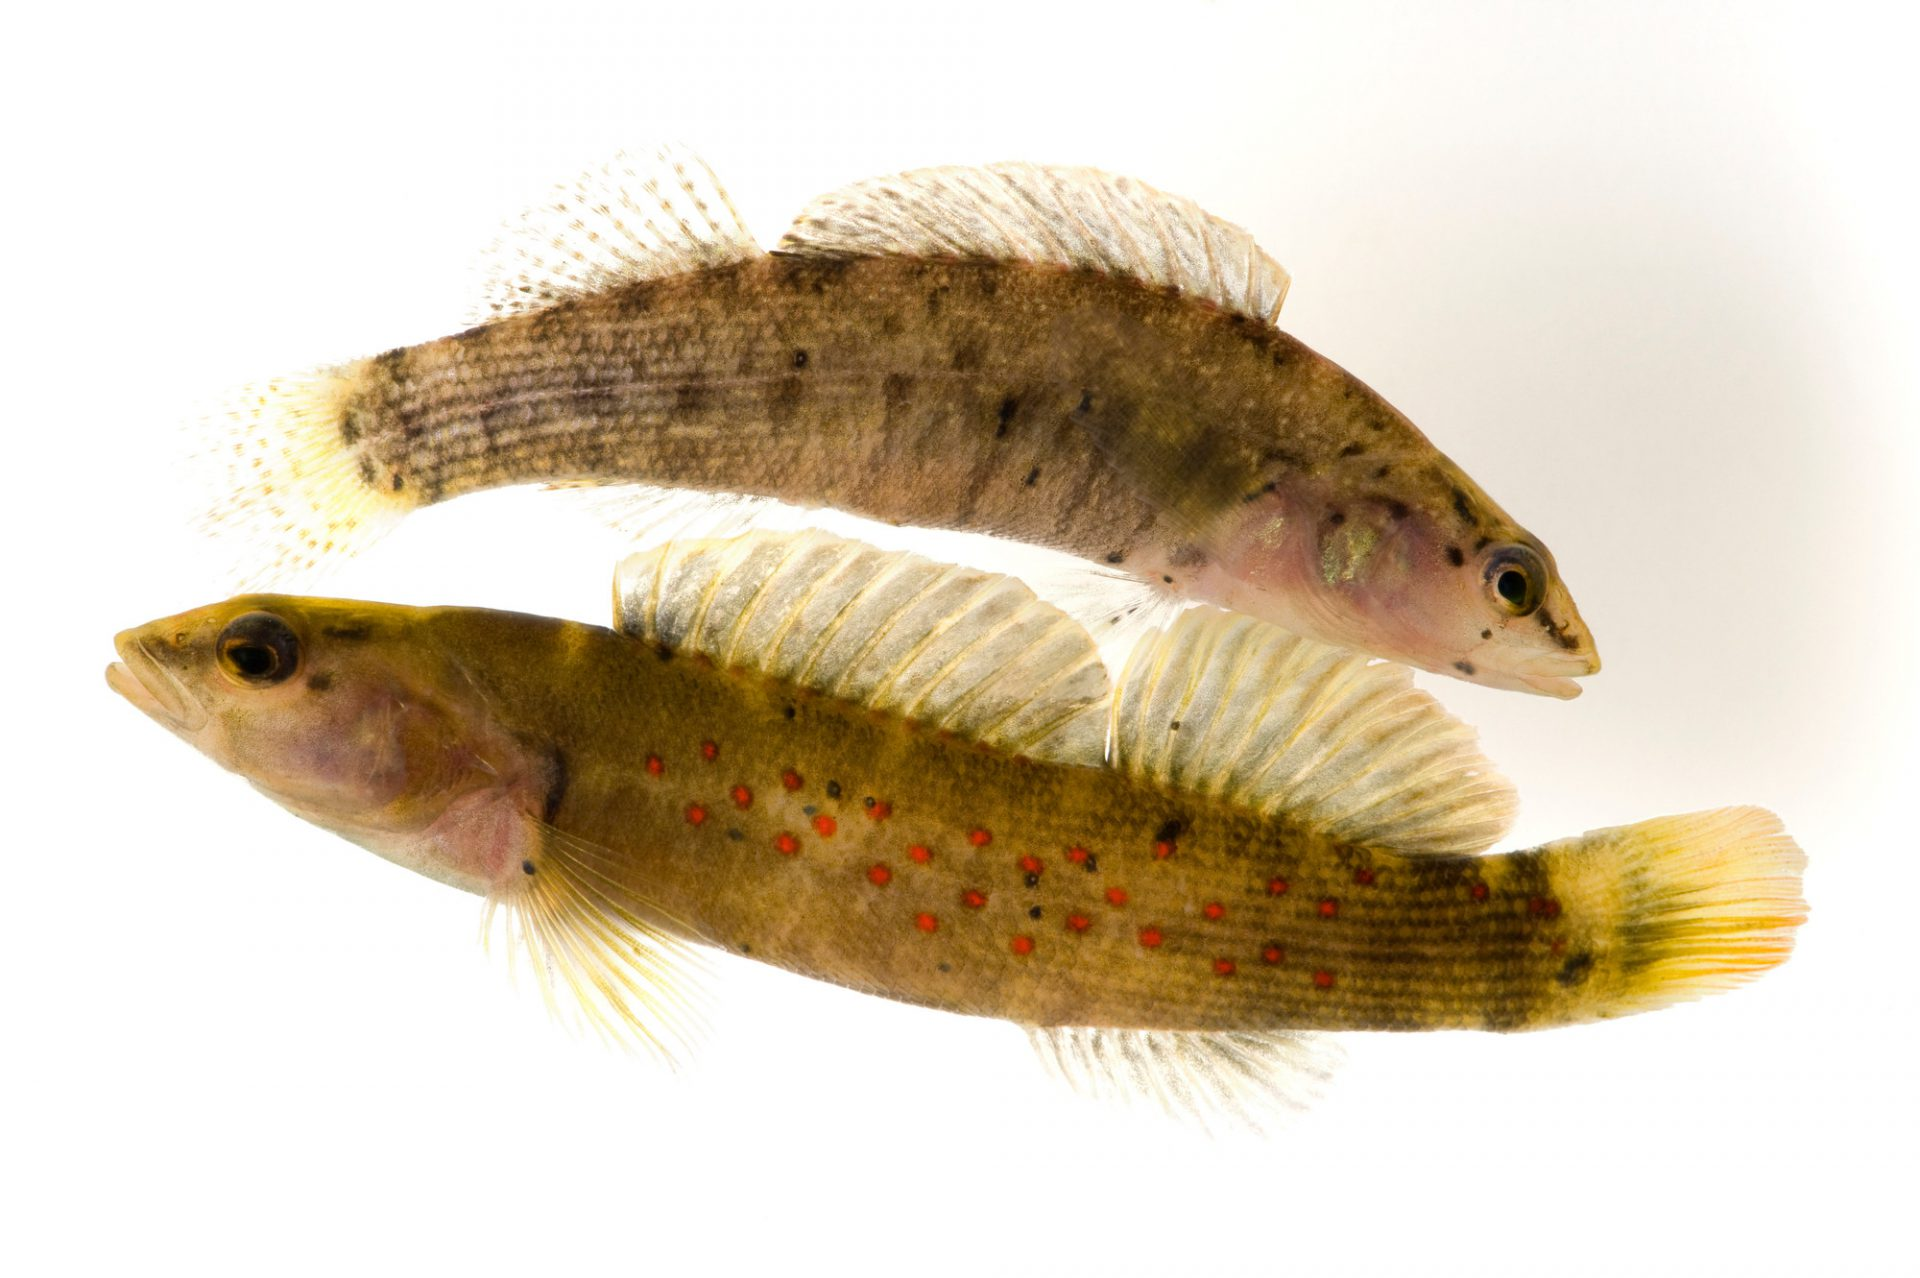 Spotted darter (Etheostoma maculatum) from the Elk River, West Virginia, population. (IUCN: Near Threatened)